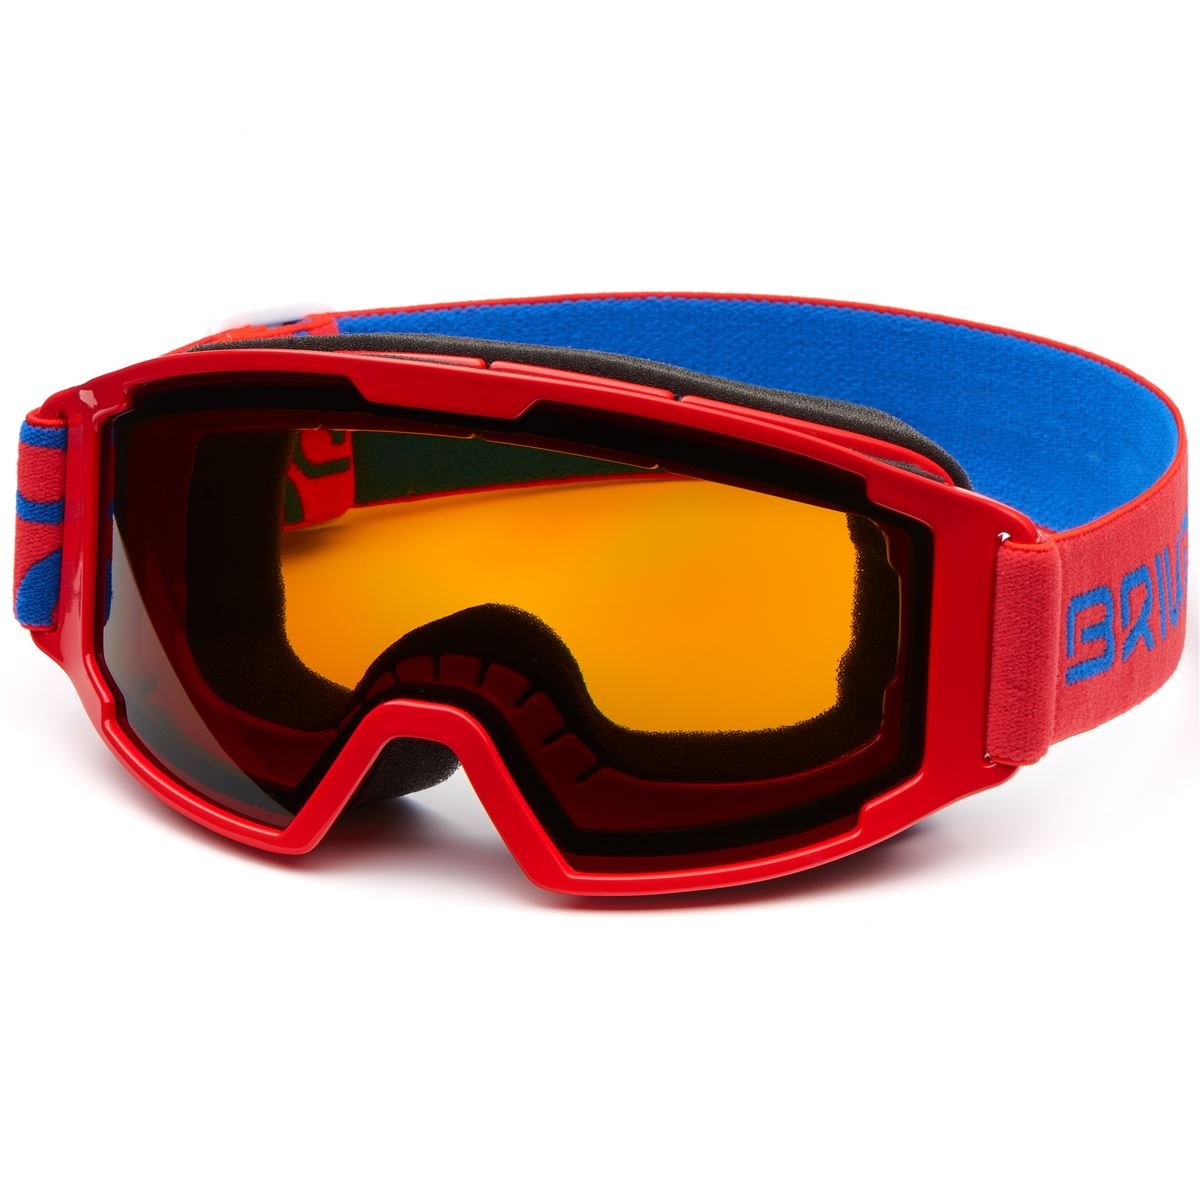 Goggles Briko for kid men-2002K60